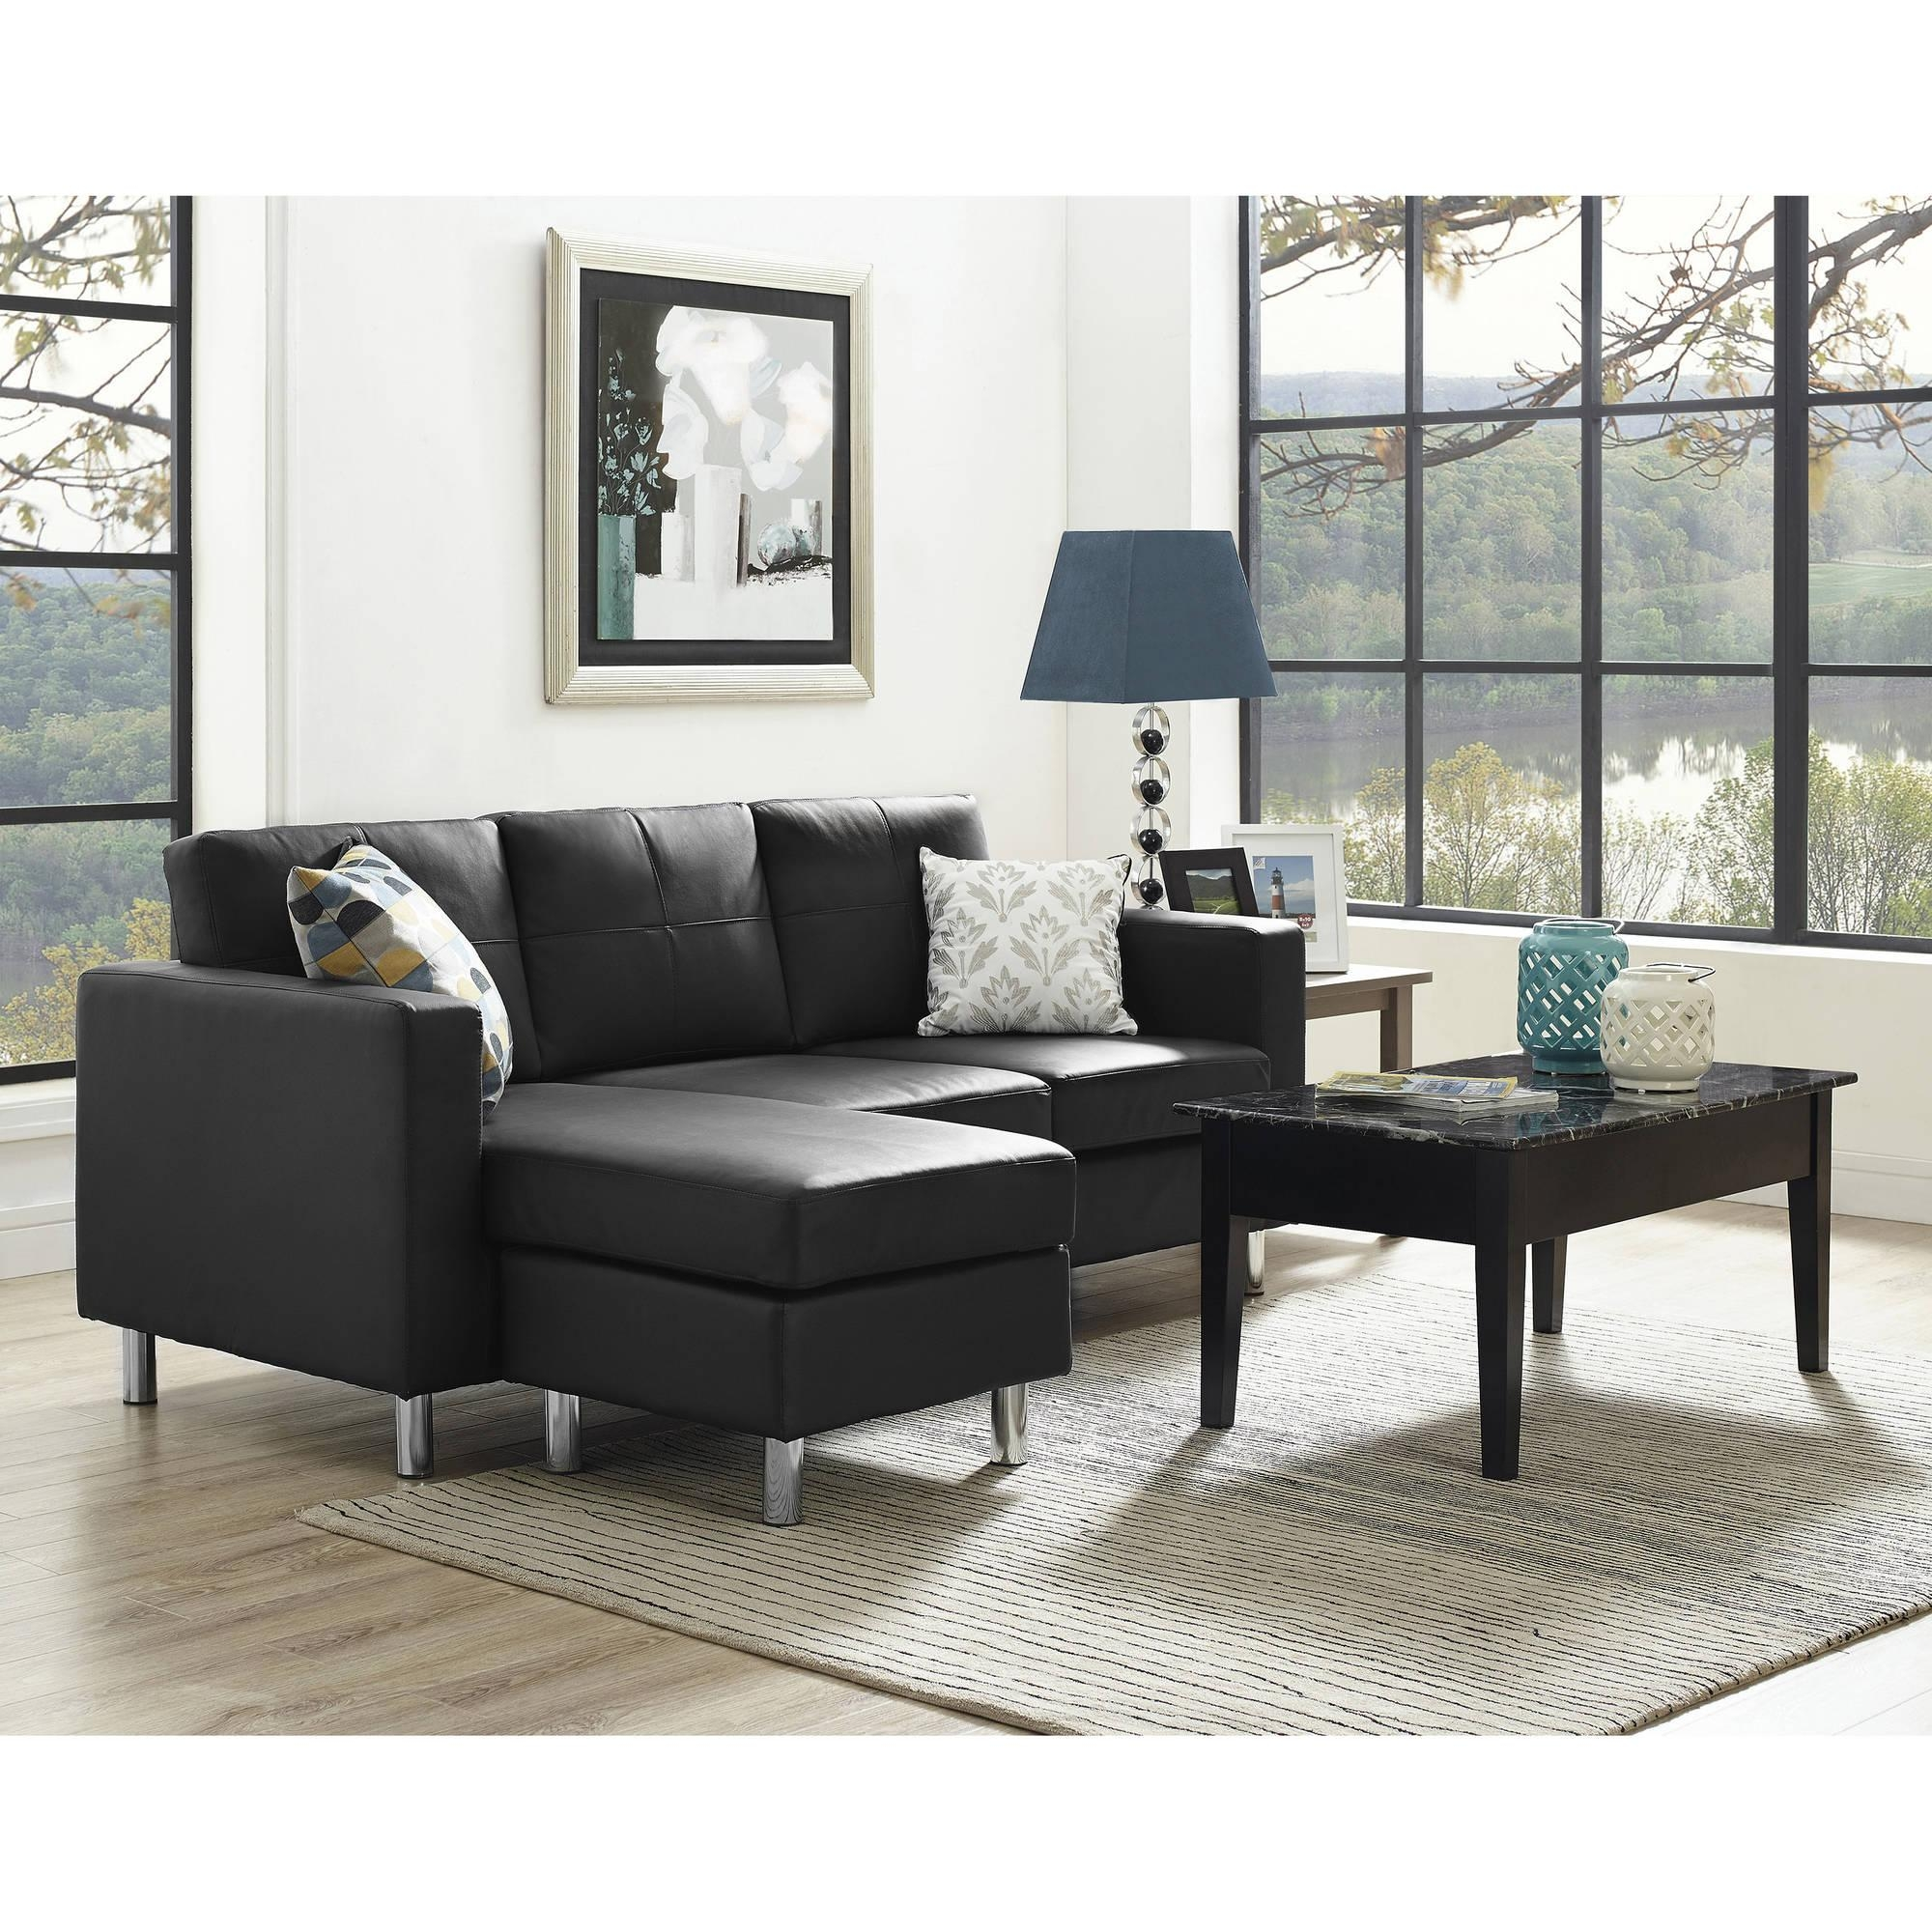 Dorel Living Small Spaces Configurable Sectional Sofa, Multiple Regarding Apartment Sectional (Image 10 of 15)